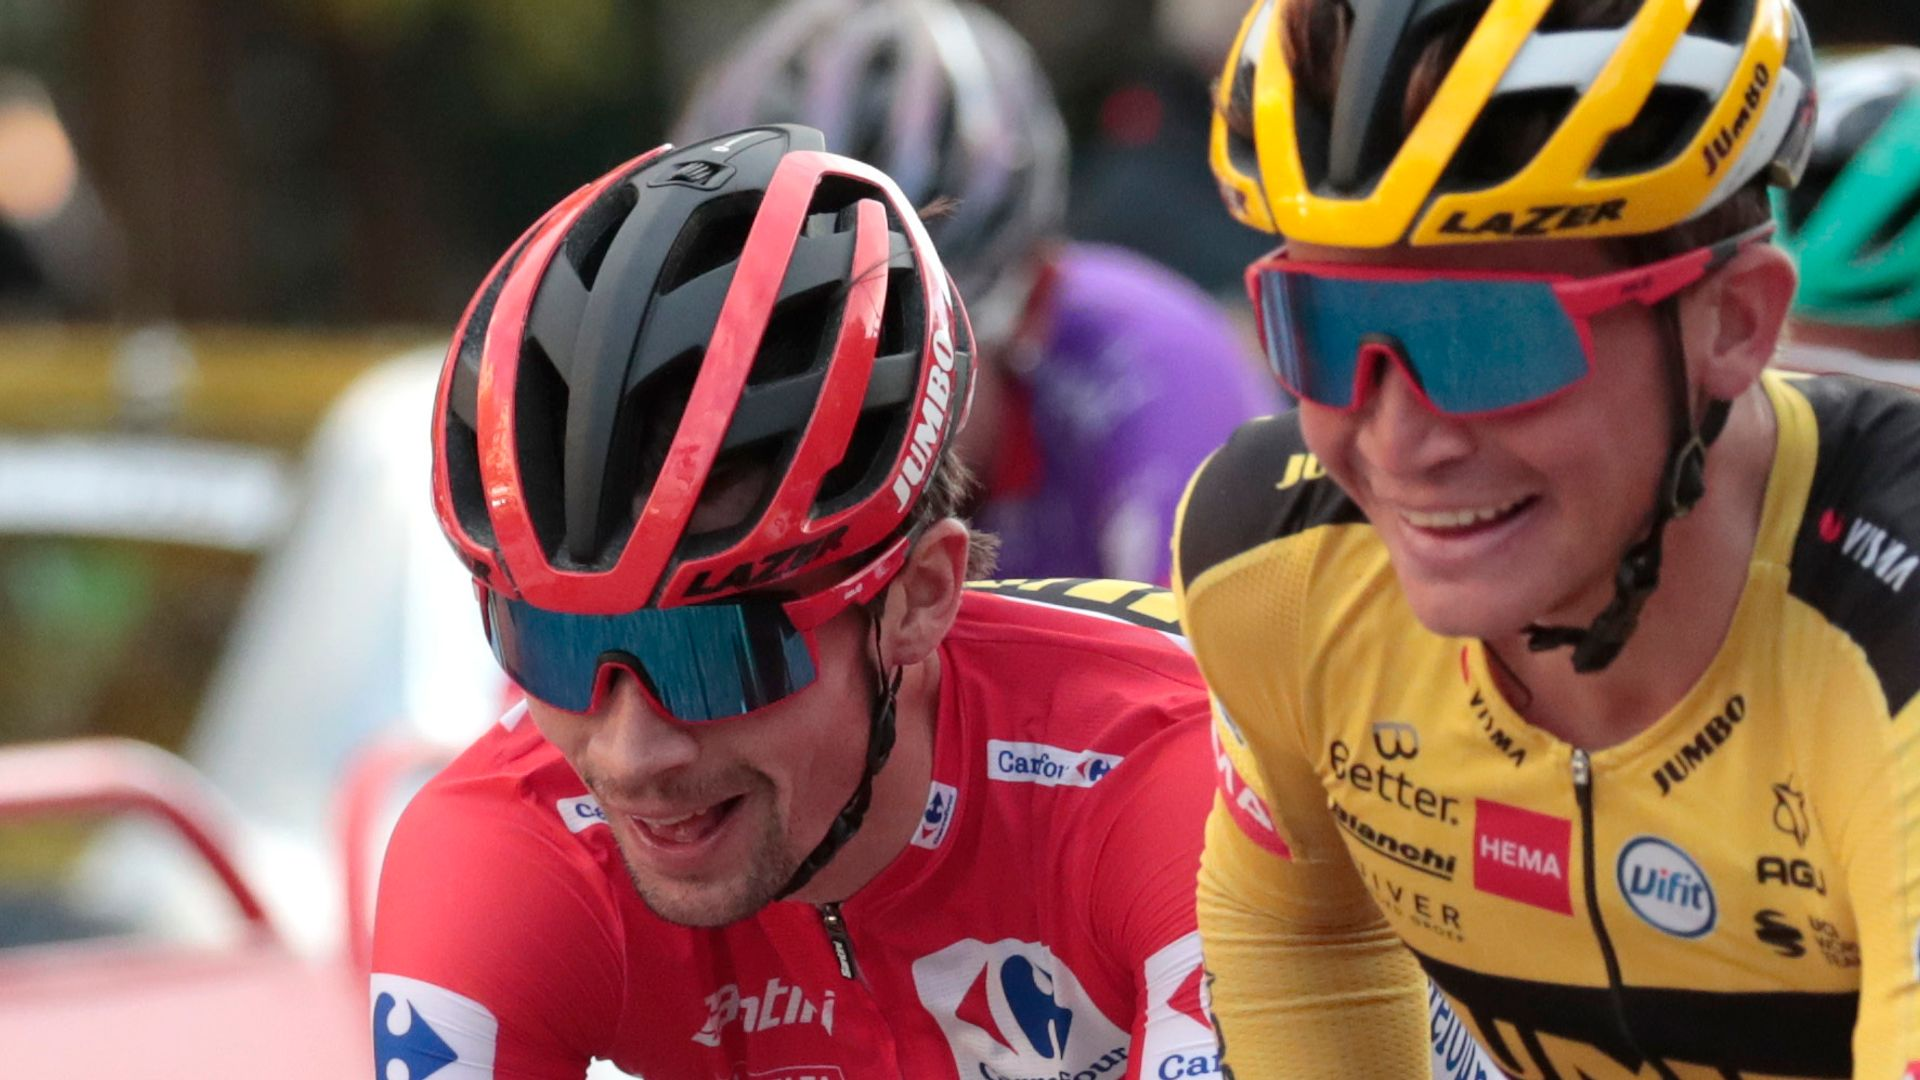 Vuelta breaks from tradition to end in Santiago